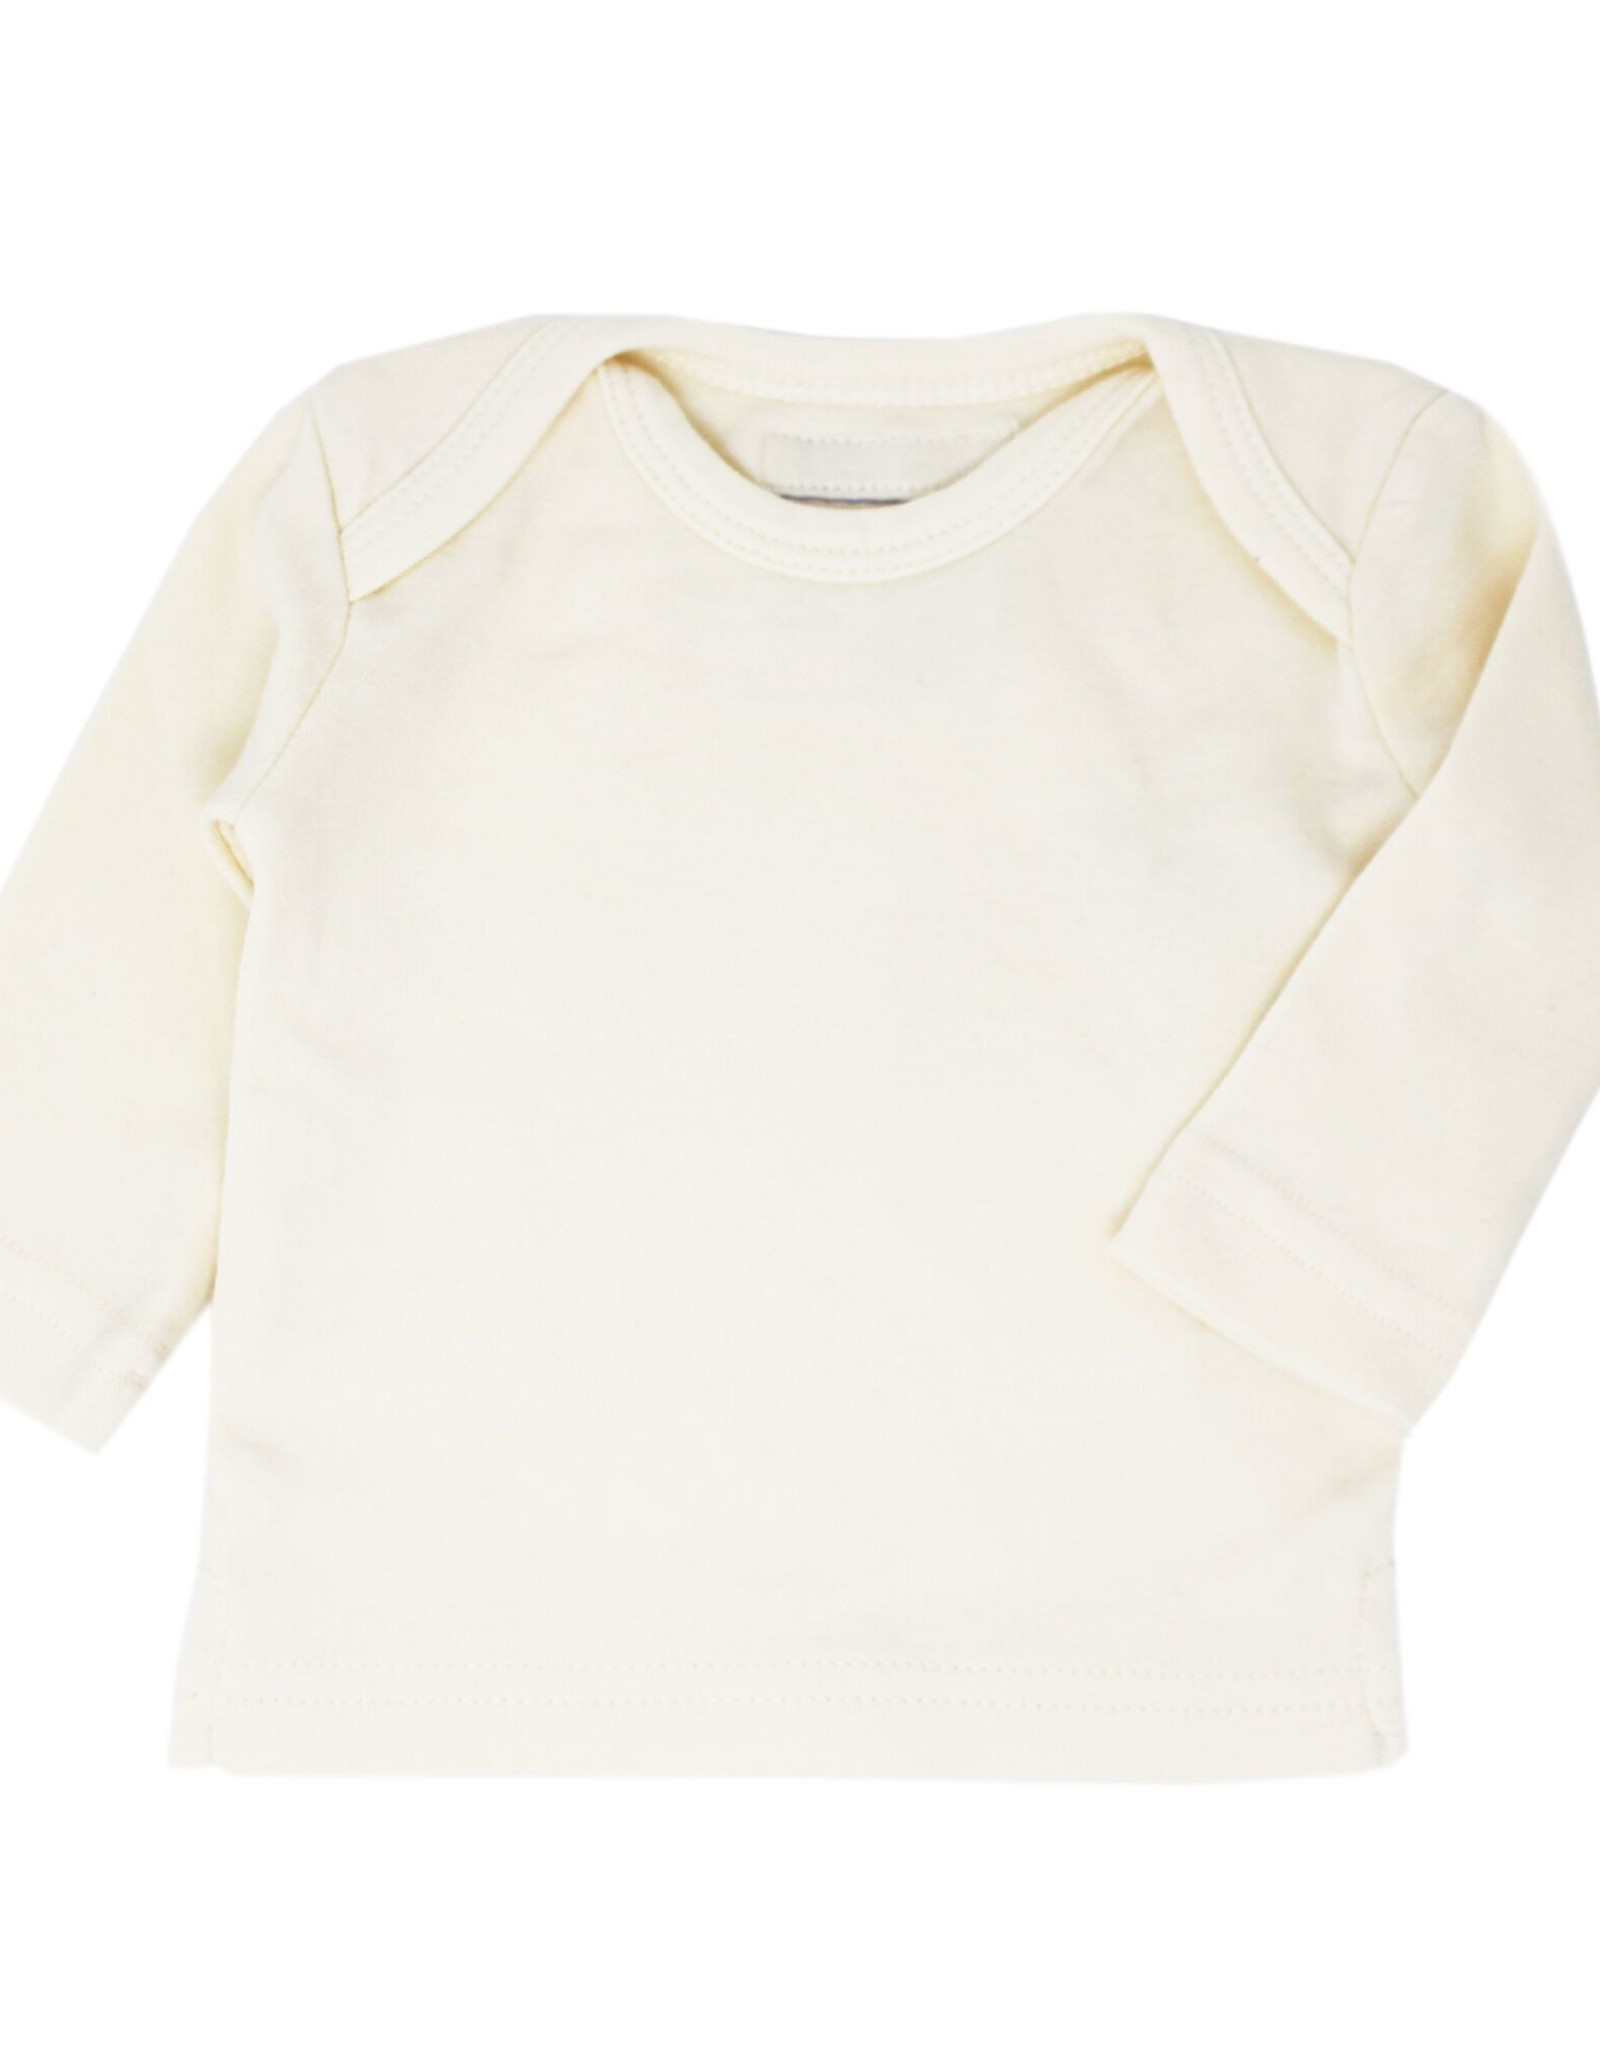 L'oved Baby Organic Cotton Long Sleeve Shirt- Beige